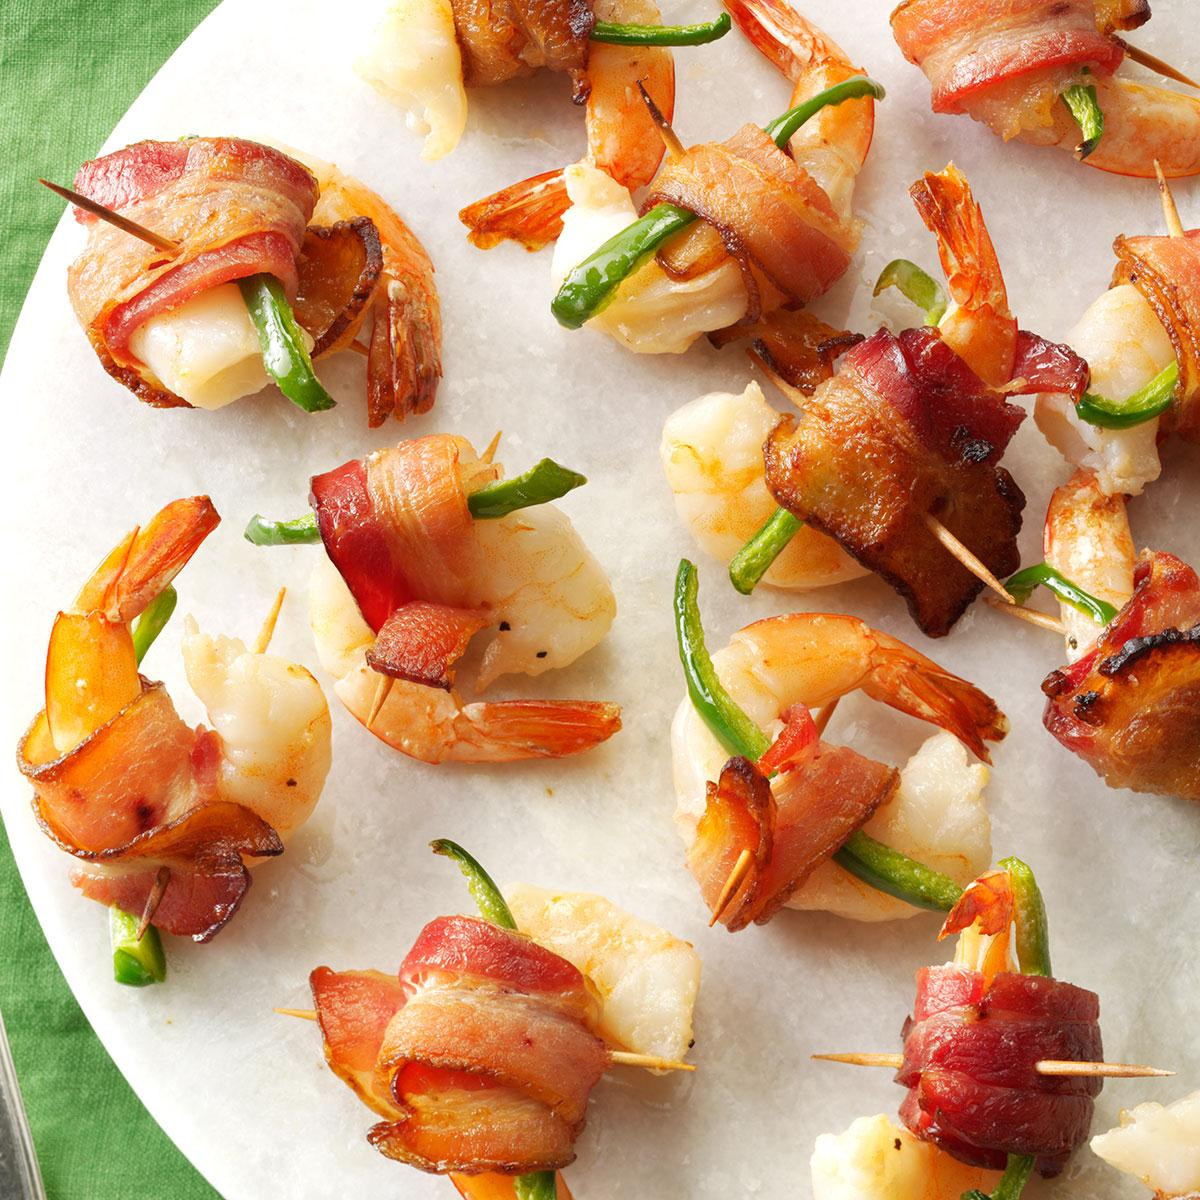 Shrimp Appetizer Recipes  Bacon Wrapped Shrimp Recipe